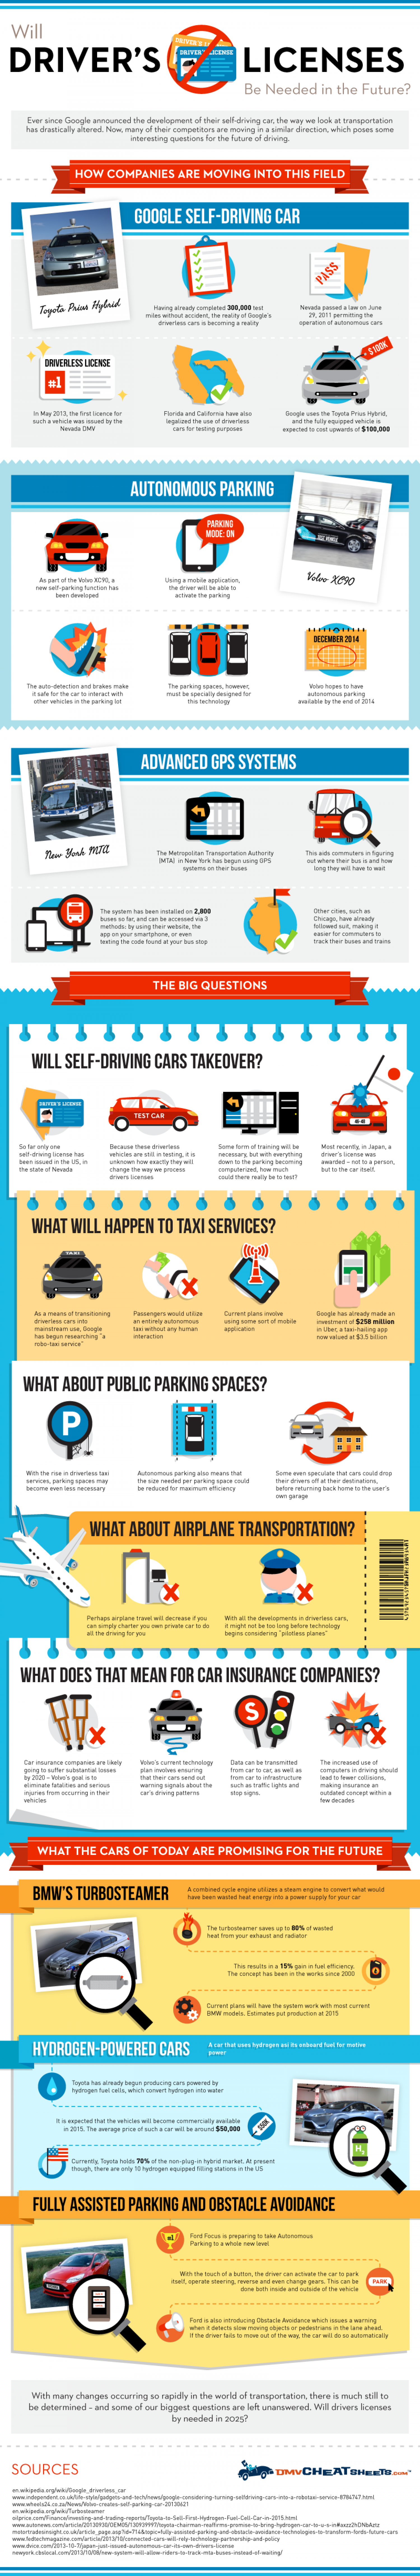 Will Drivers Licenses Be Needed In The Future Infographic